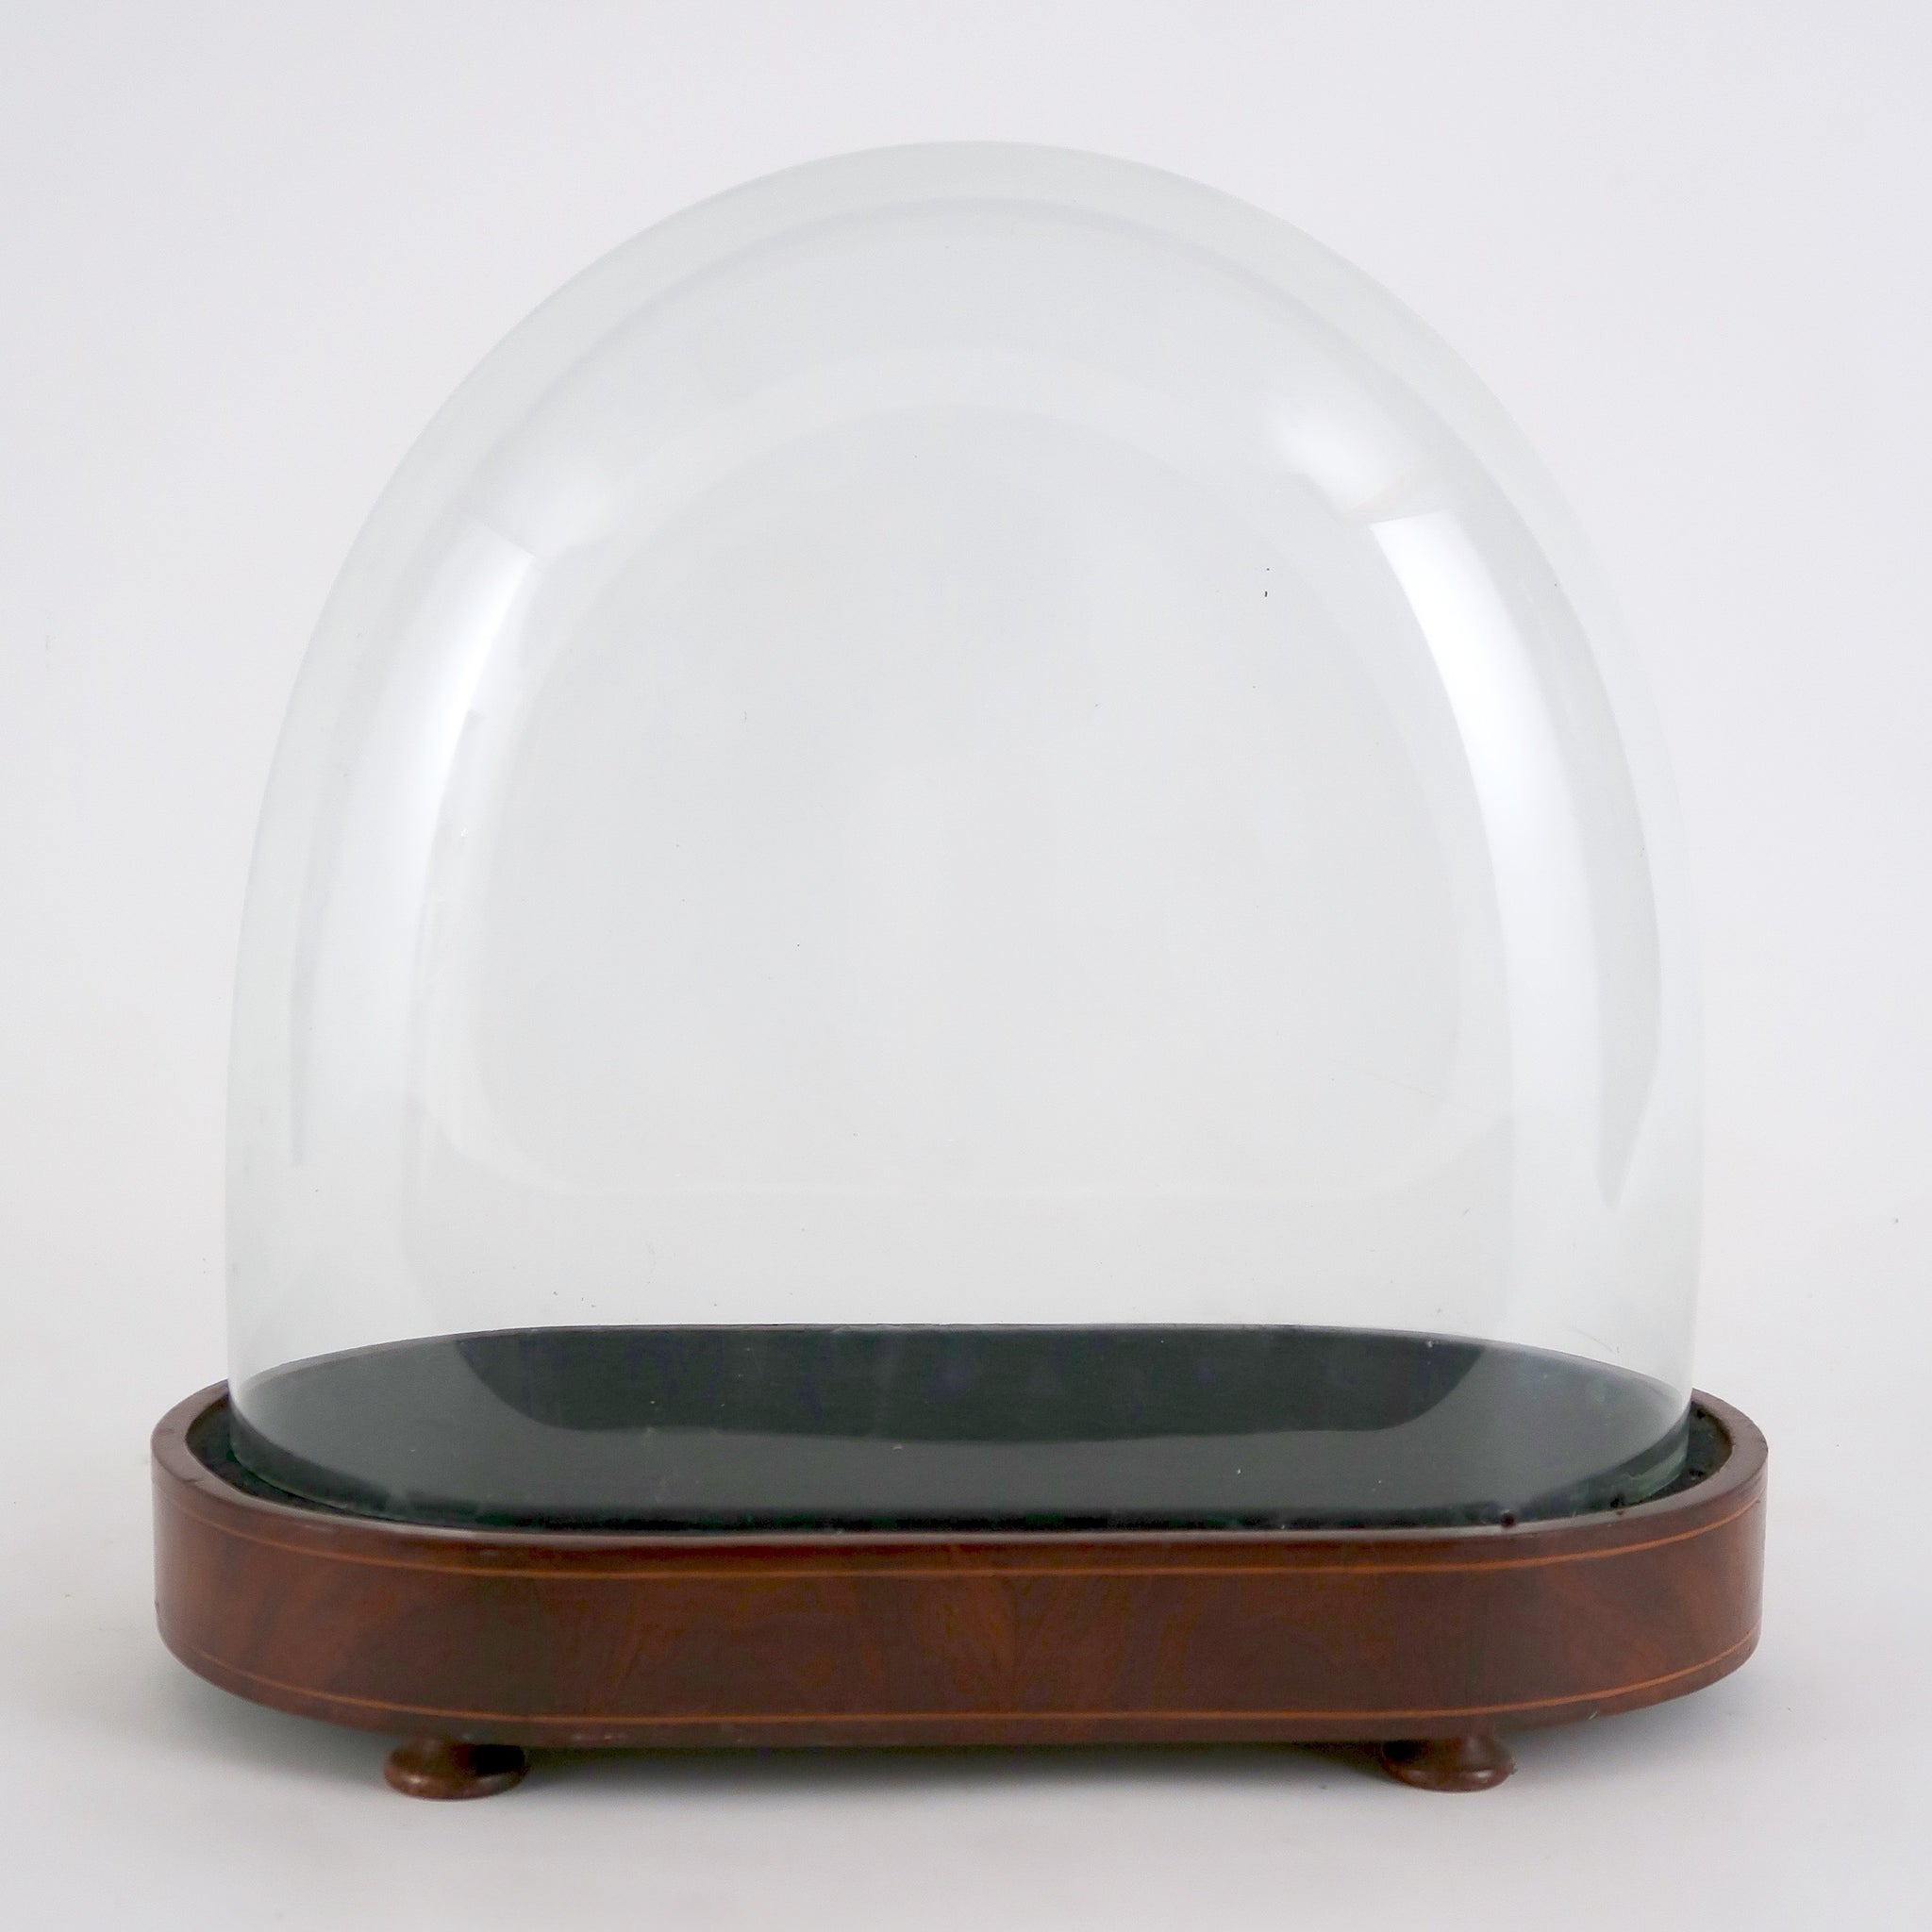 Large oval victorian glass dome.